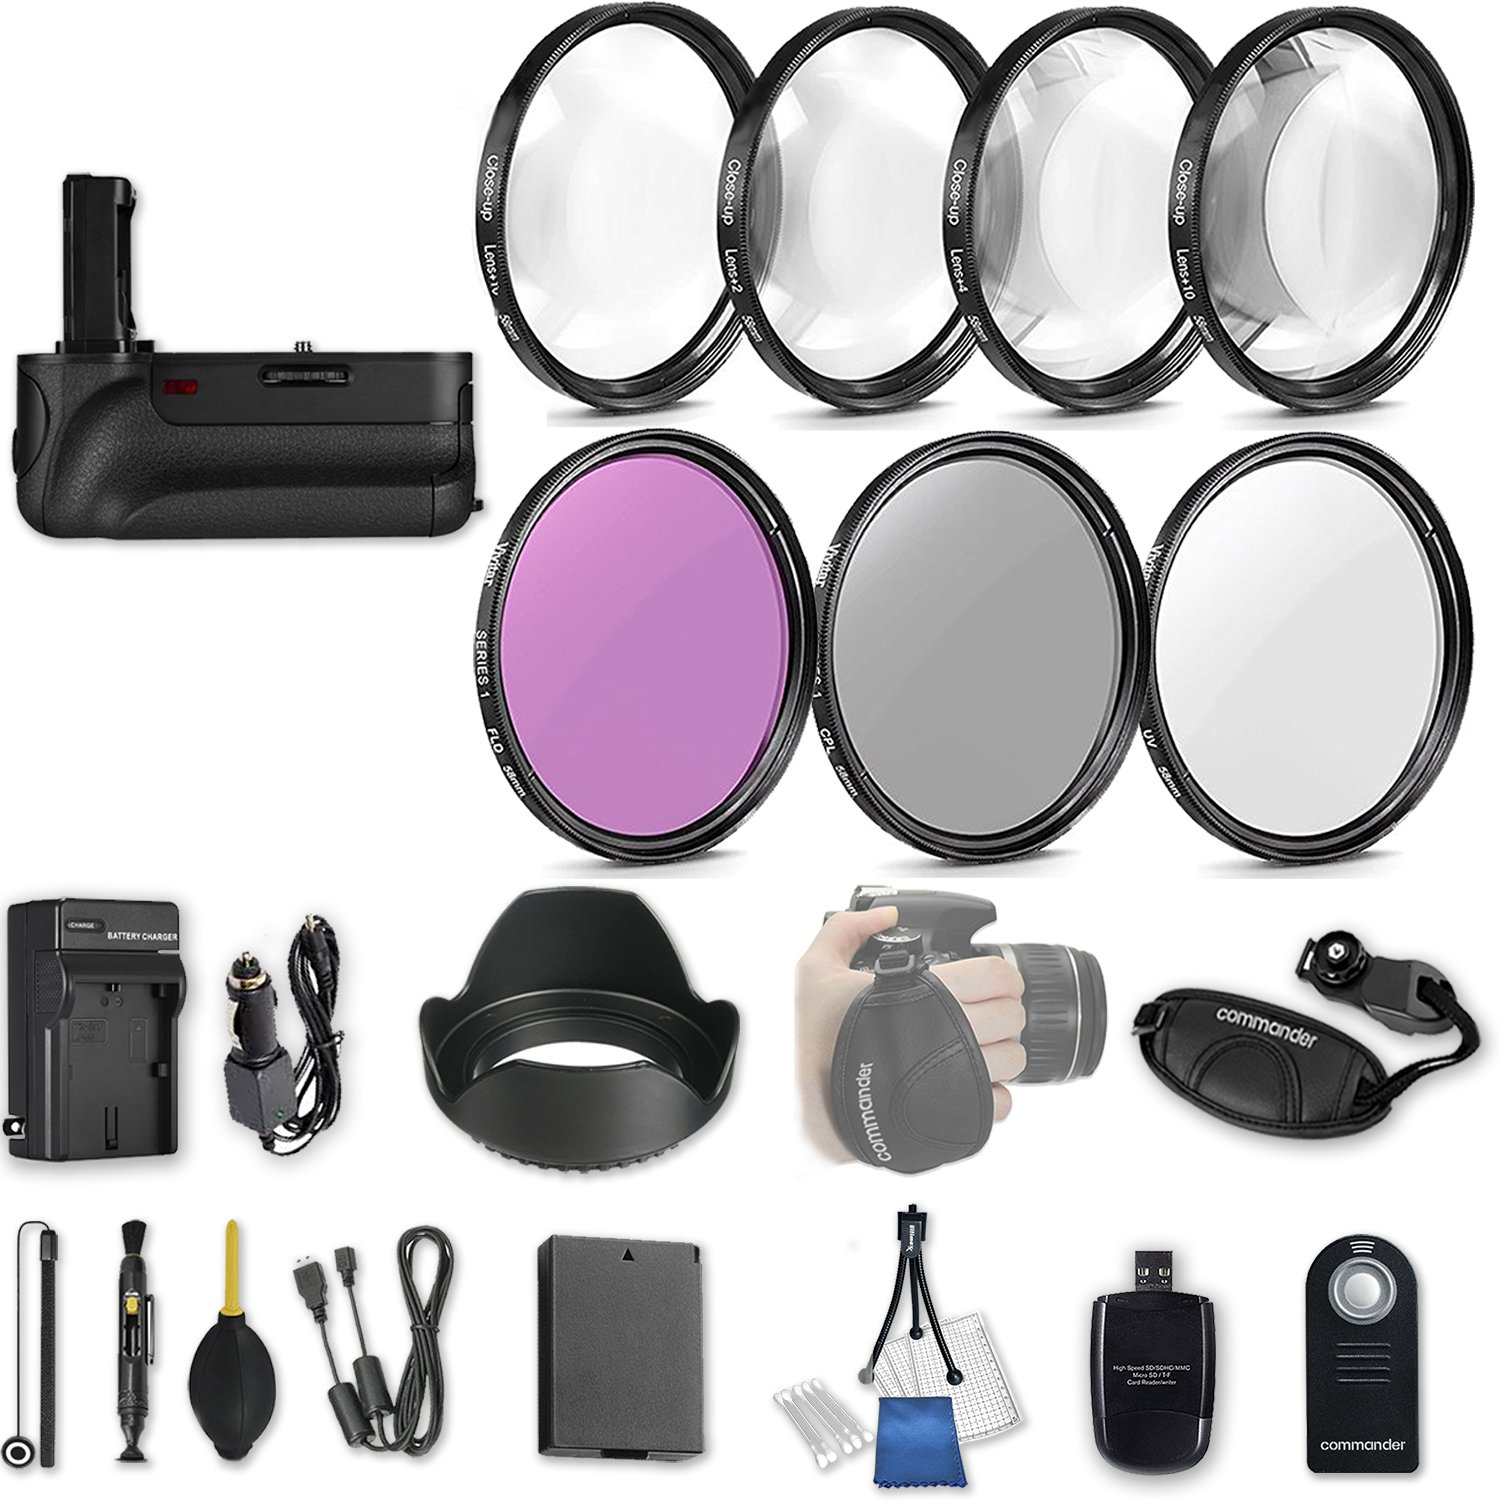 58mm 21 Pc Accessory Kit for Canon EOS Rebel T6, T5, T3, 1300D, 1200D, 1100D DSLRs with Battery Grip, UV CPL FLD Filters, & 4 Piece Macro Close-Up Set, Battery, and More by 33rd Street